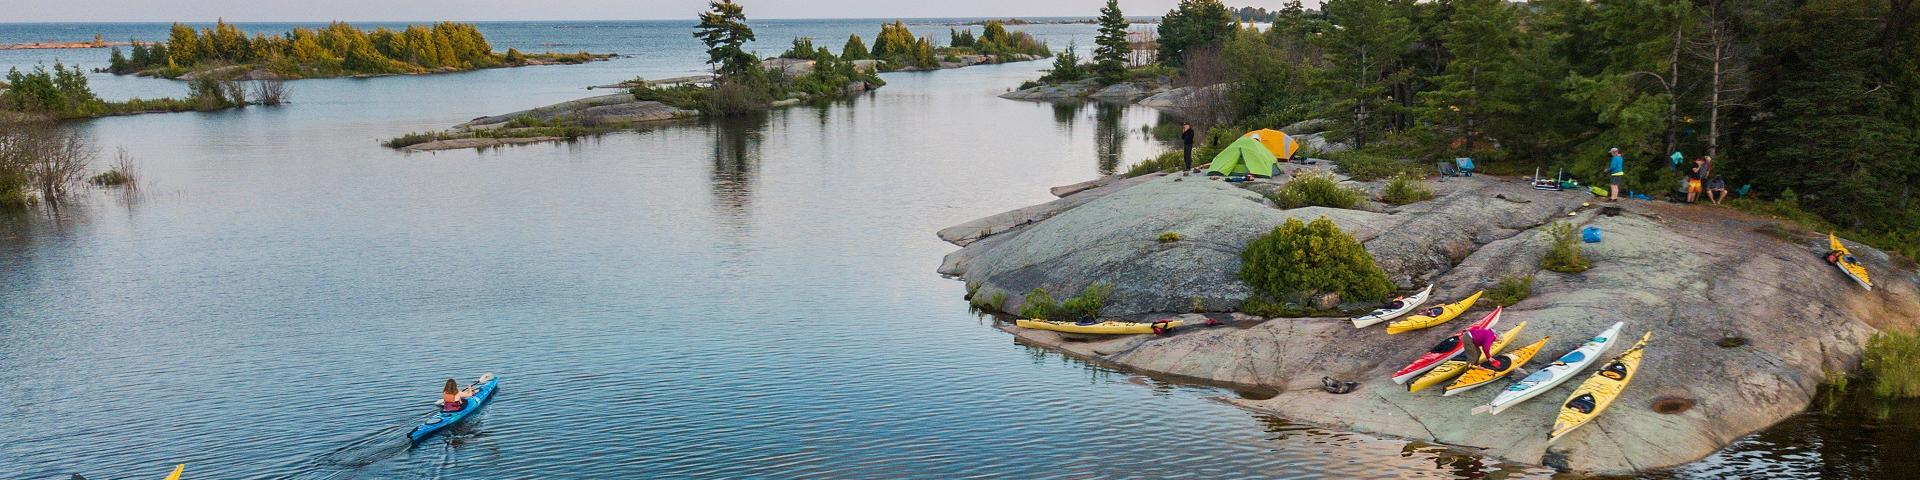 An aerial view of kayakers camping and paddling on the Great Lakes in northern Canada